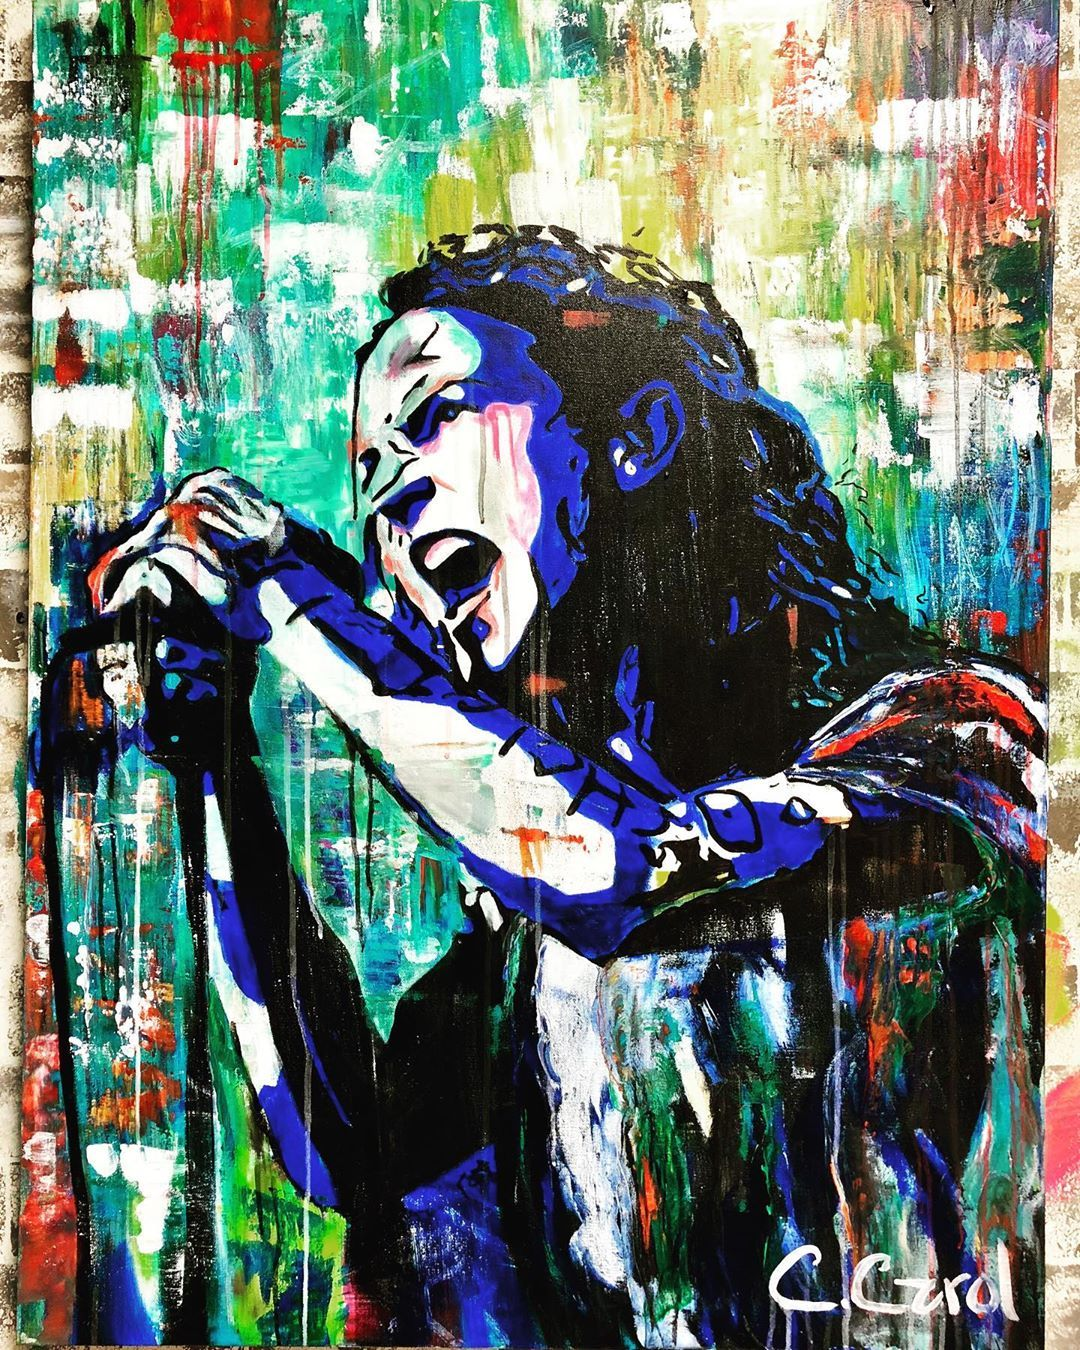 Eddie Vedder Painting By Artist Chelsea Carol On Instagram I Know I Was Born And I Know That I Ll Die The Abstract Expressionism Art Art Original Paintings